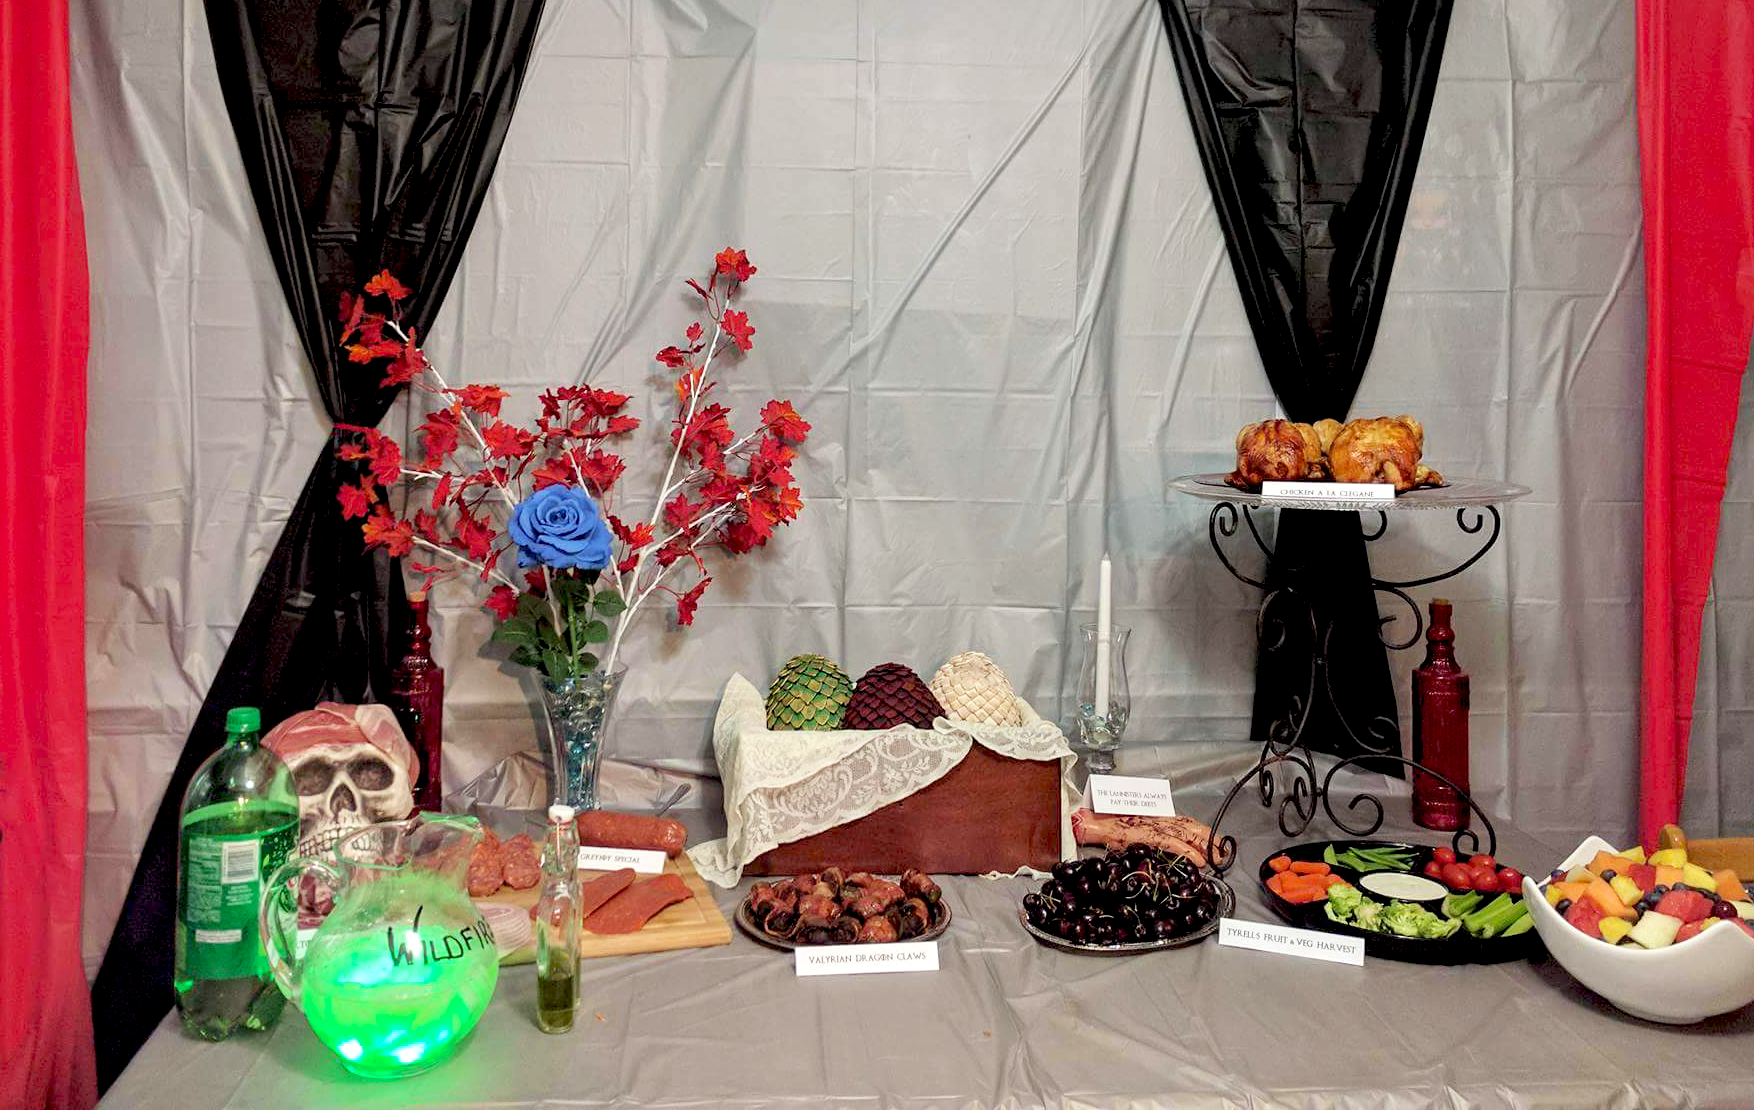 Game of Thrones party table setup